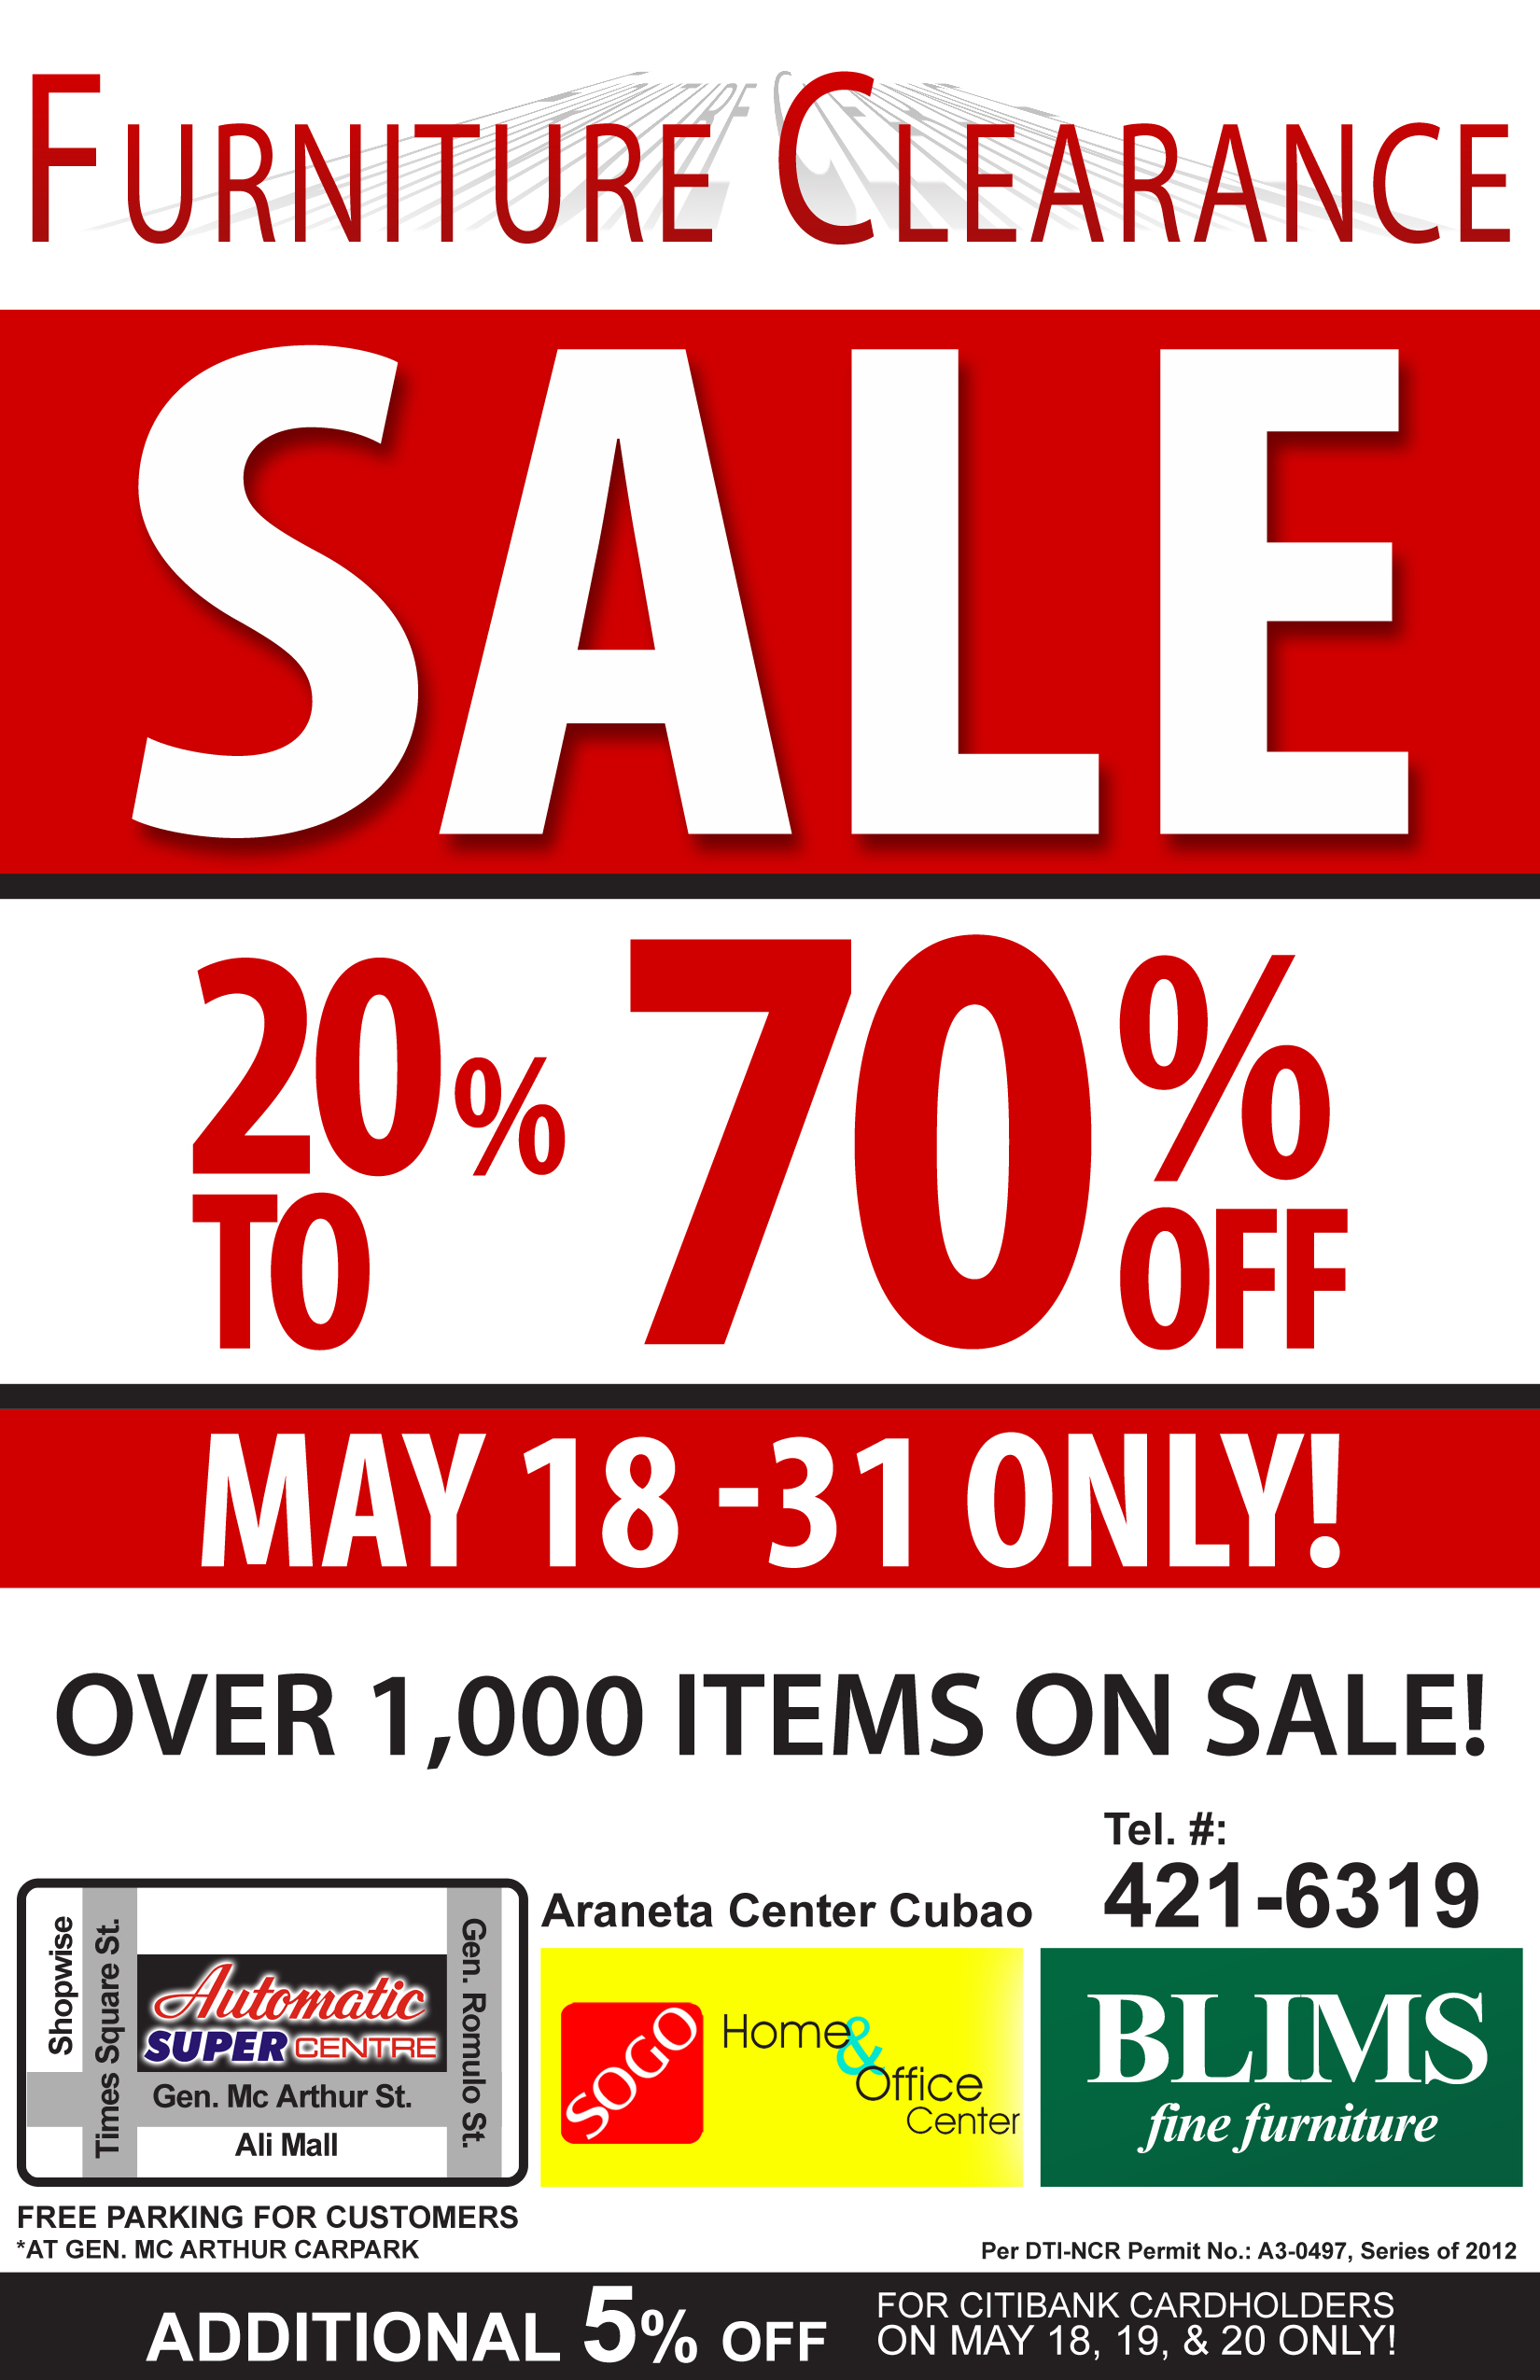 BLIMS & SOGO furniture clearance sale May 2012 | Manila On Sale